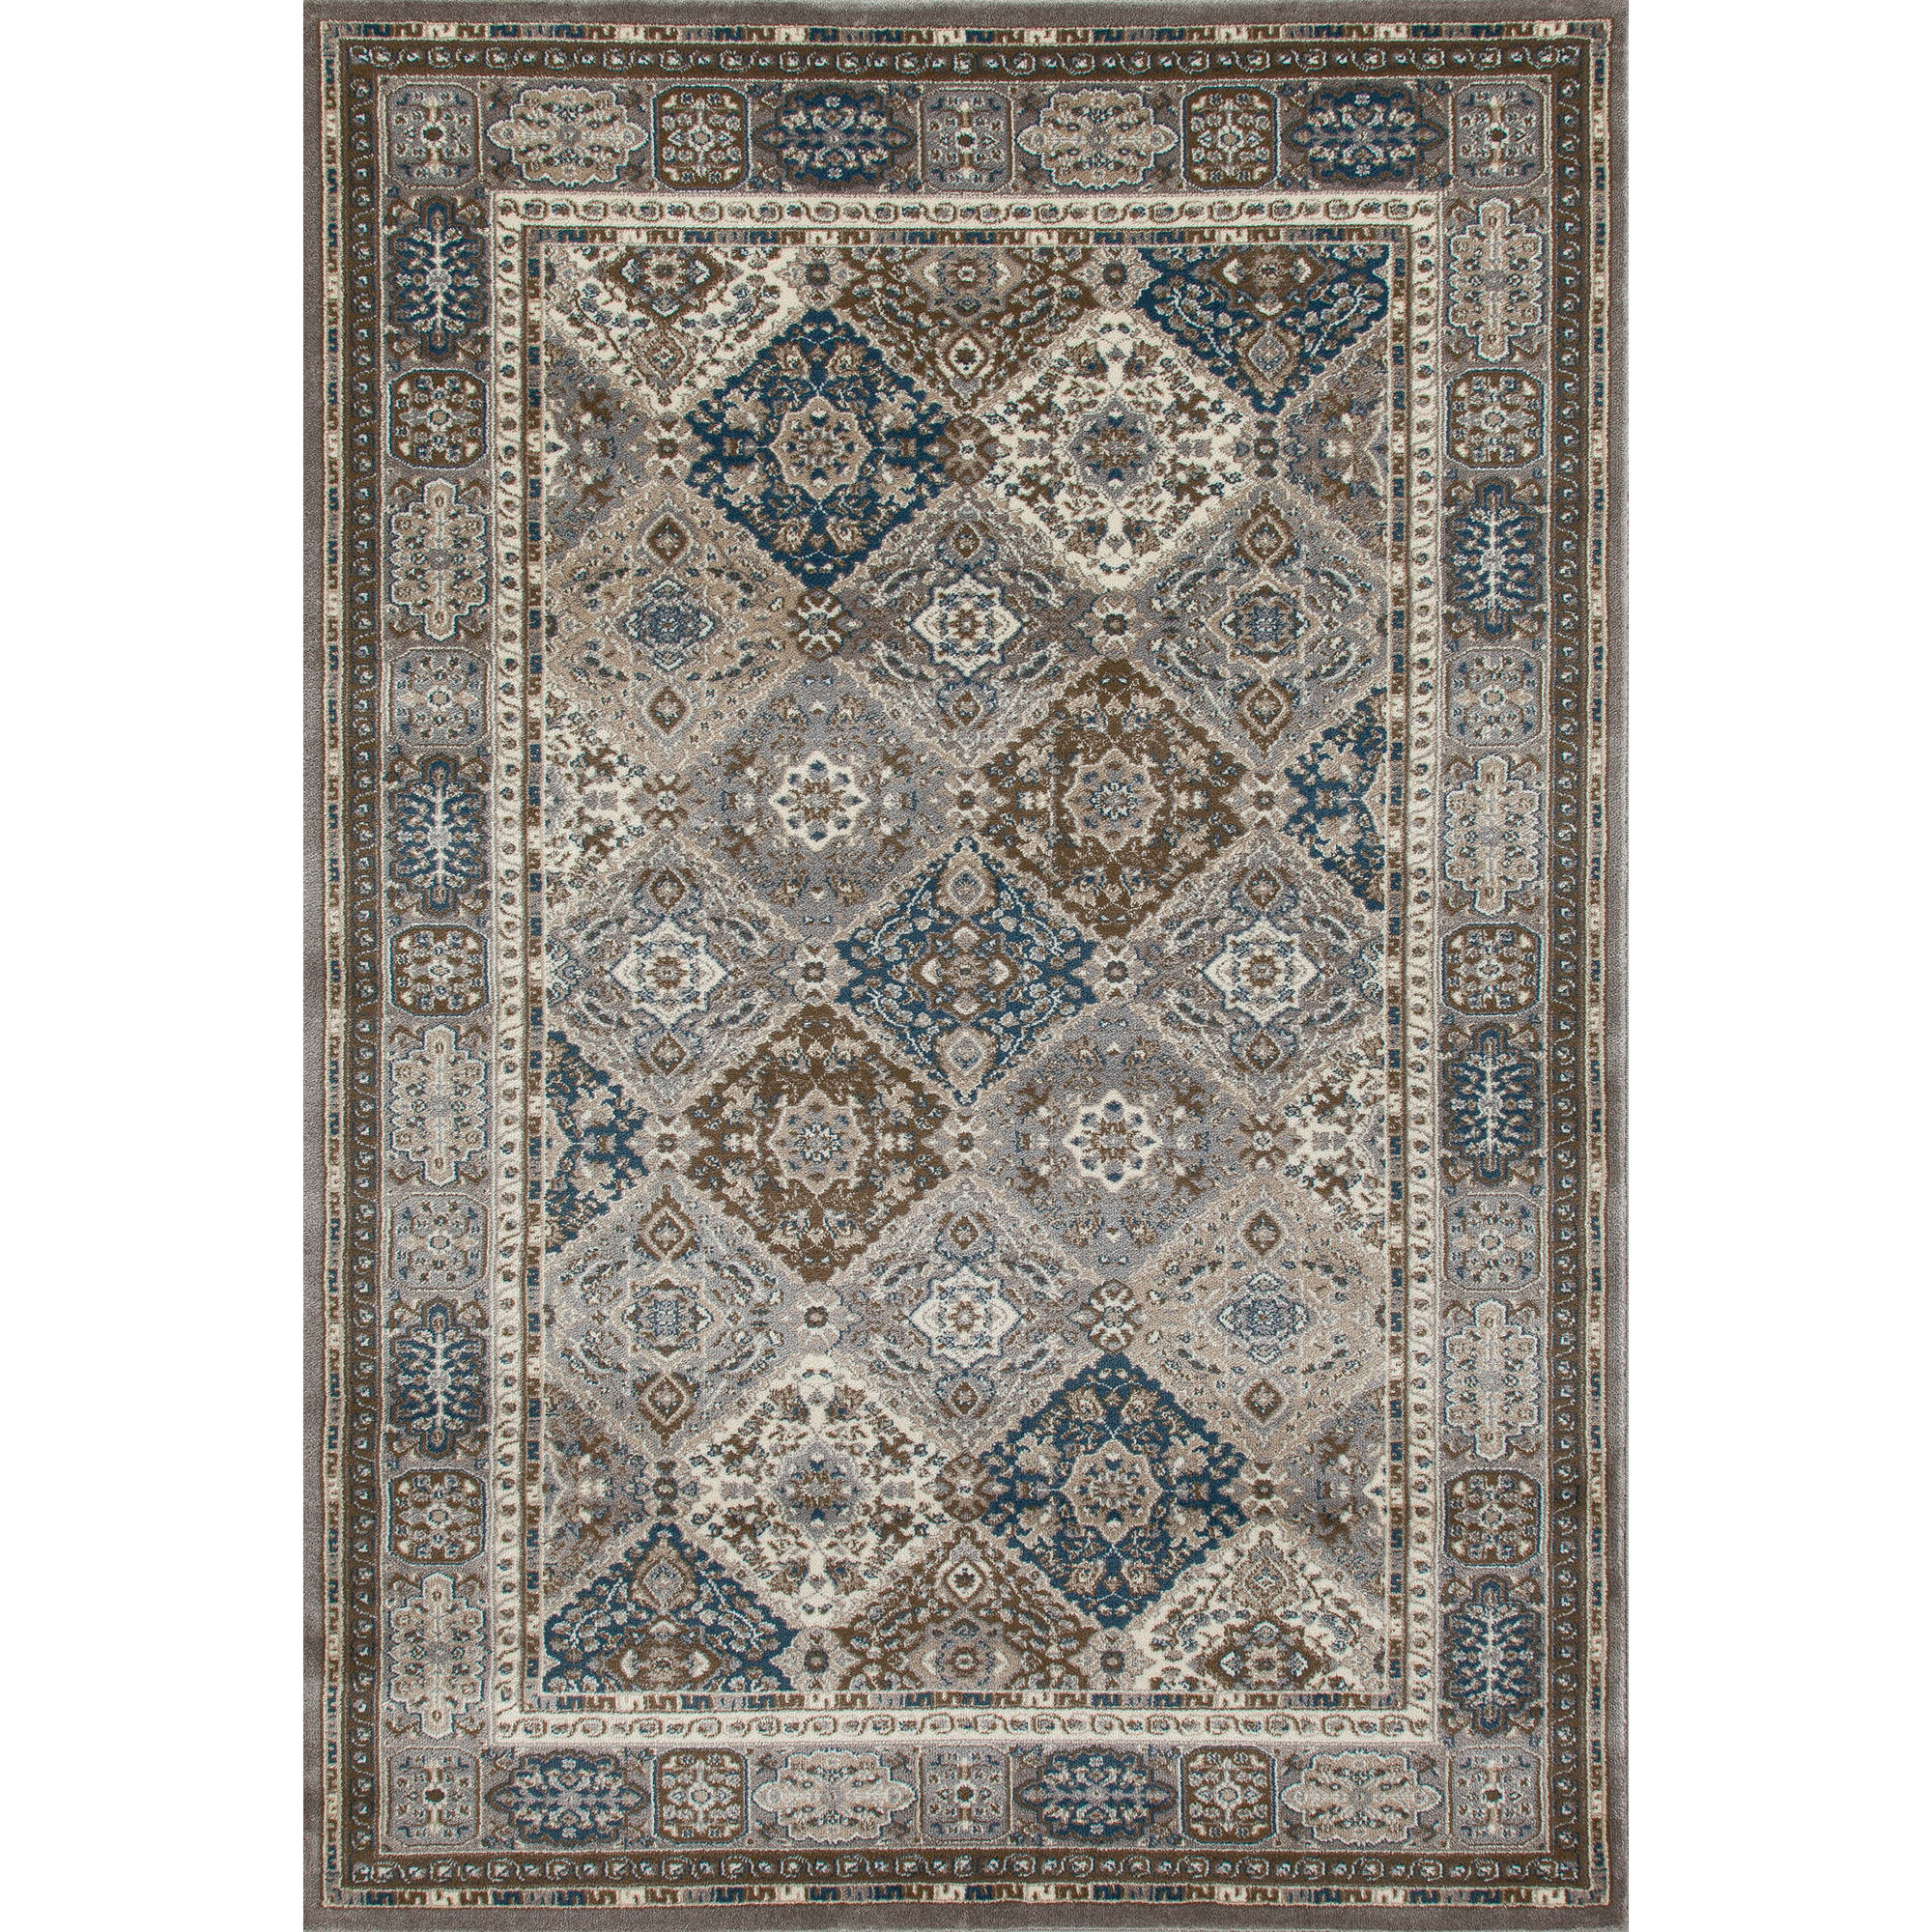 Traditional Geometric Woven Area Rug, 0155